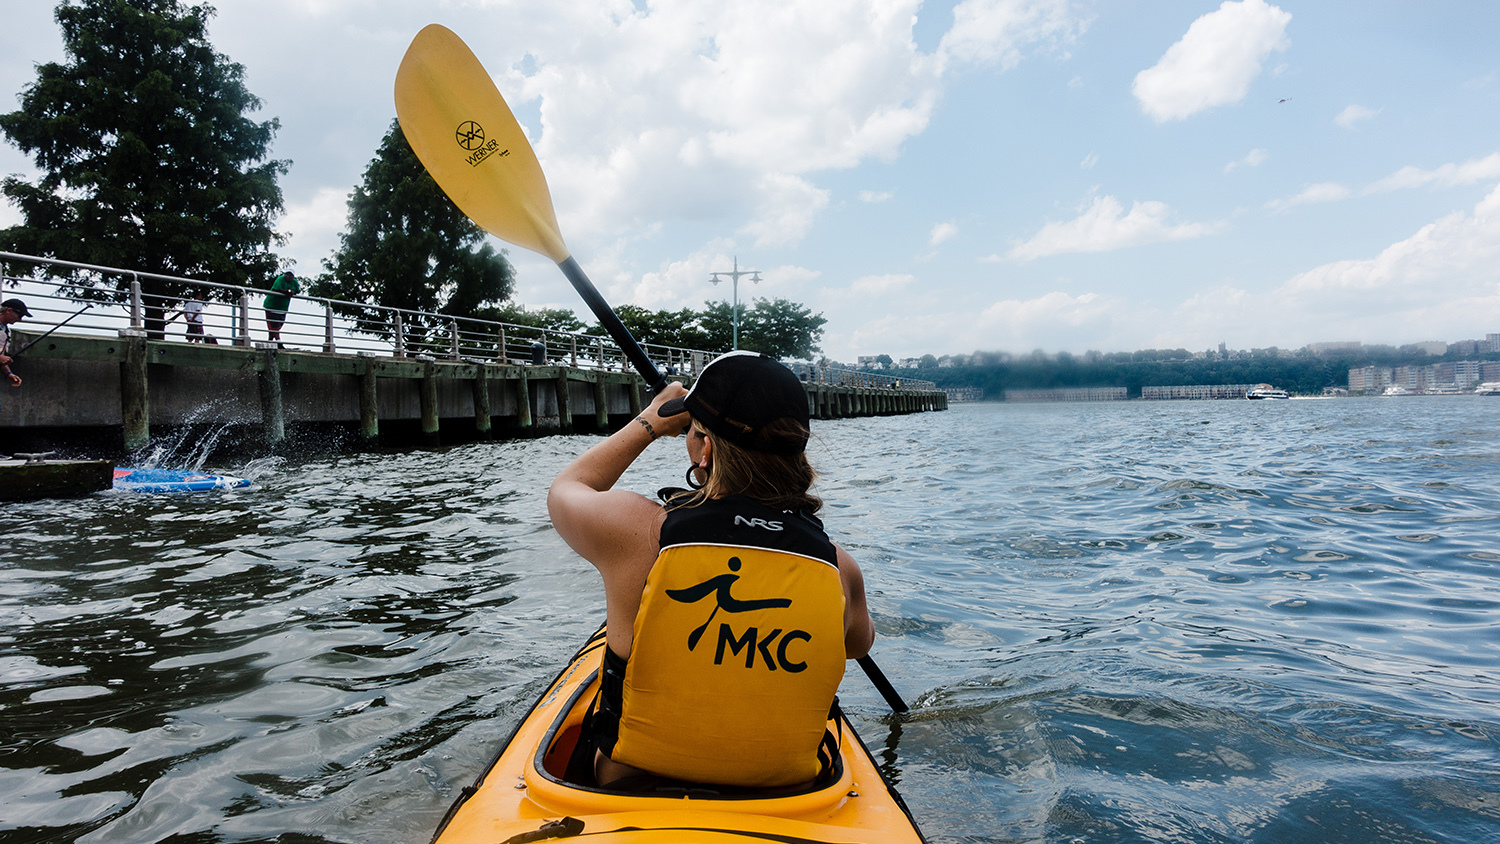 The best free kayaking in NYC